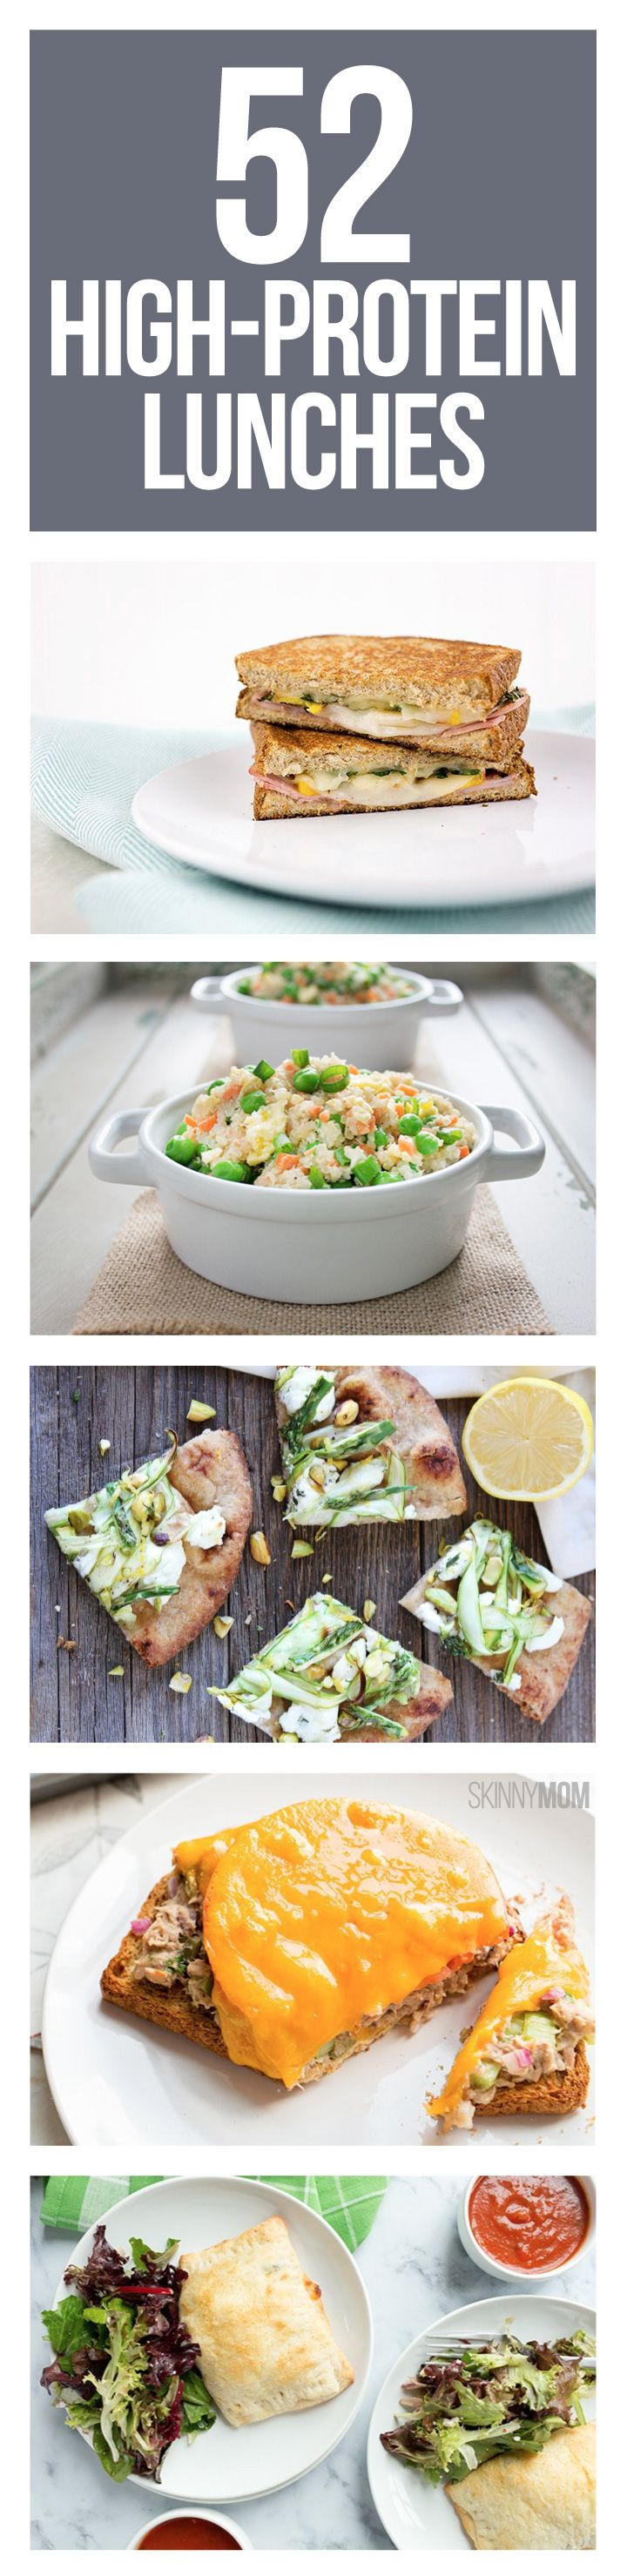 Fuel up with these lunches!